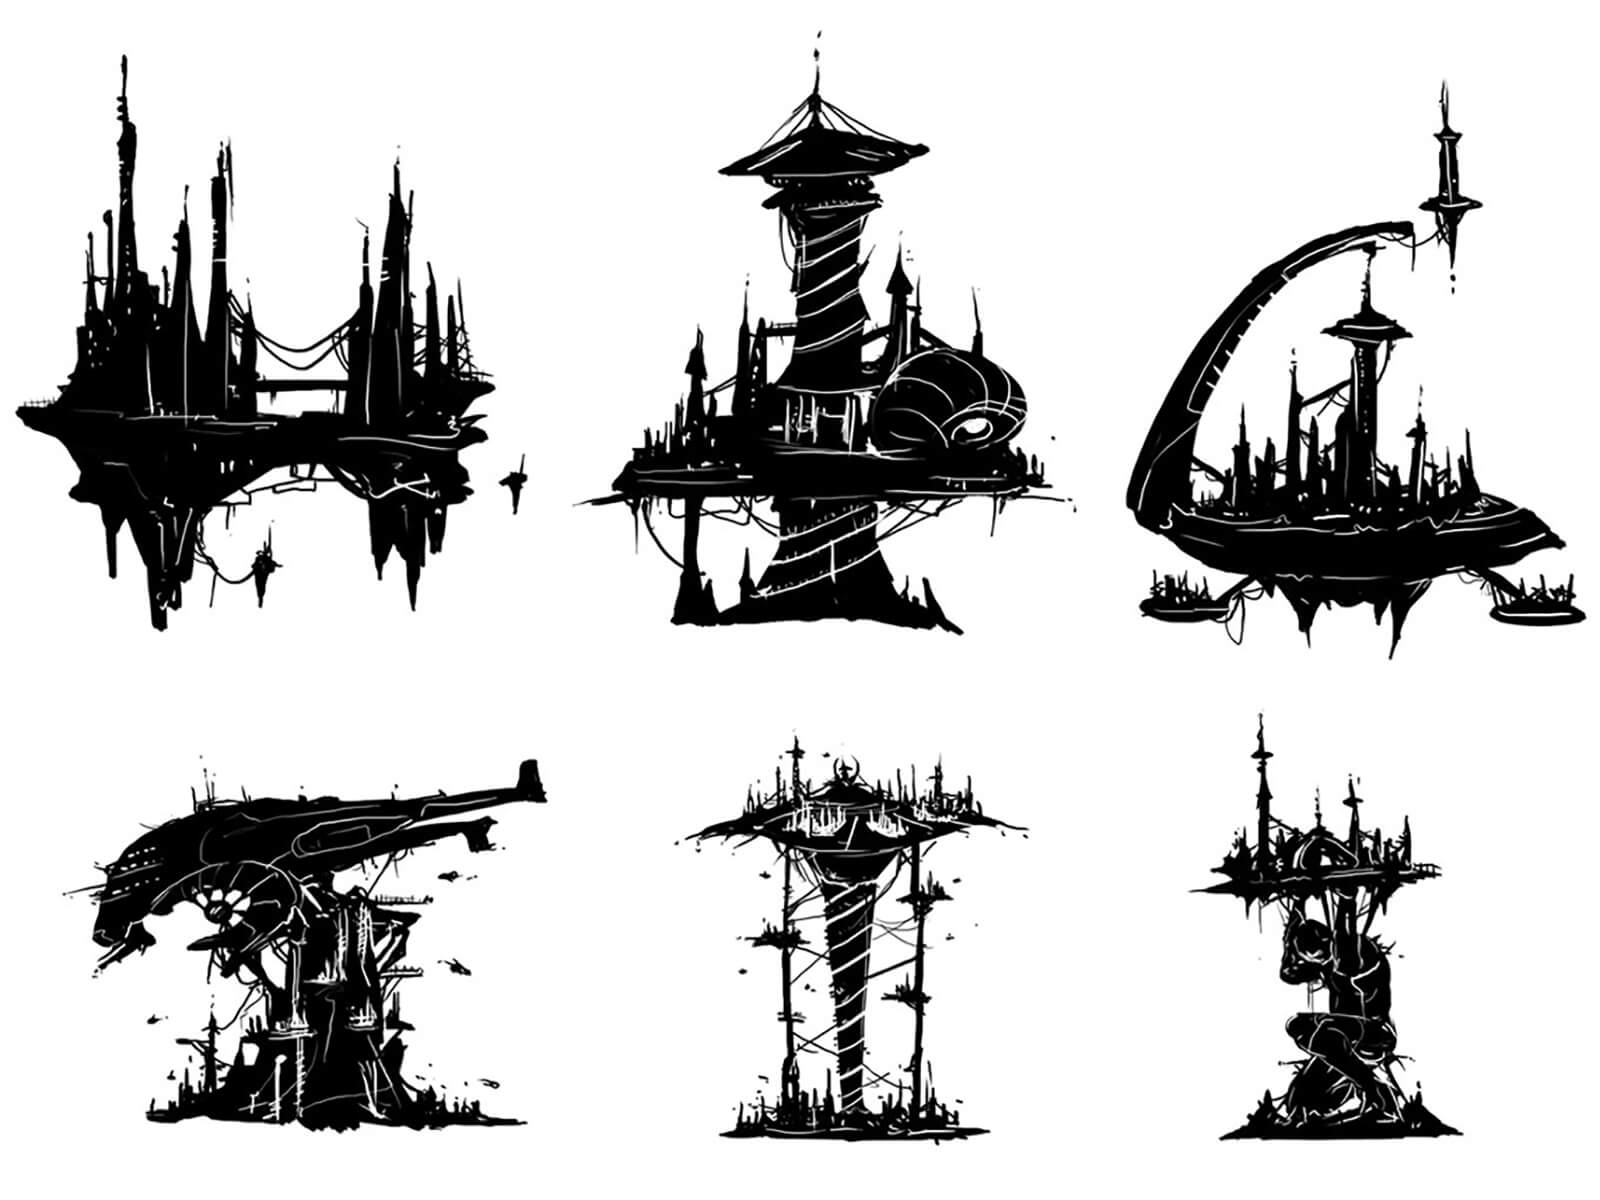 Concept sketches of an alien, city-like aircraft, with varying amounts of spire and tower structures on top of it.